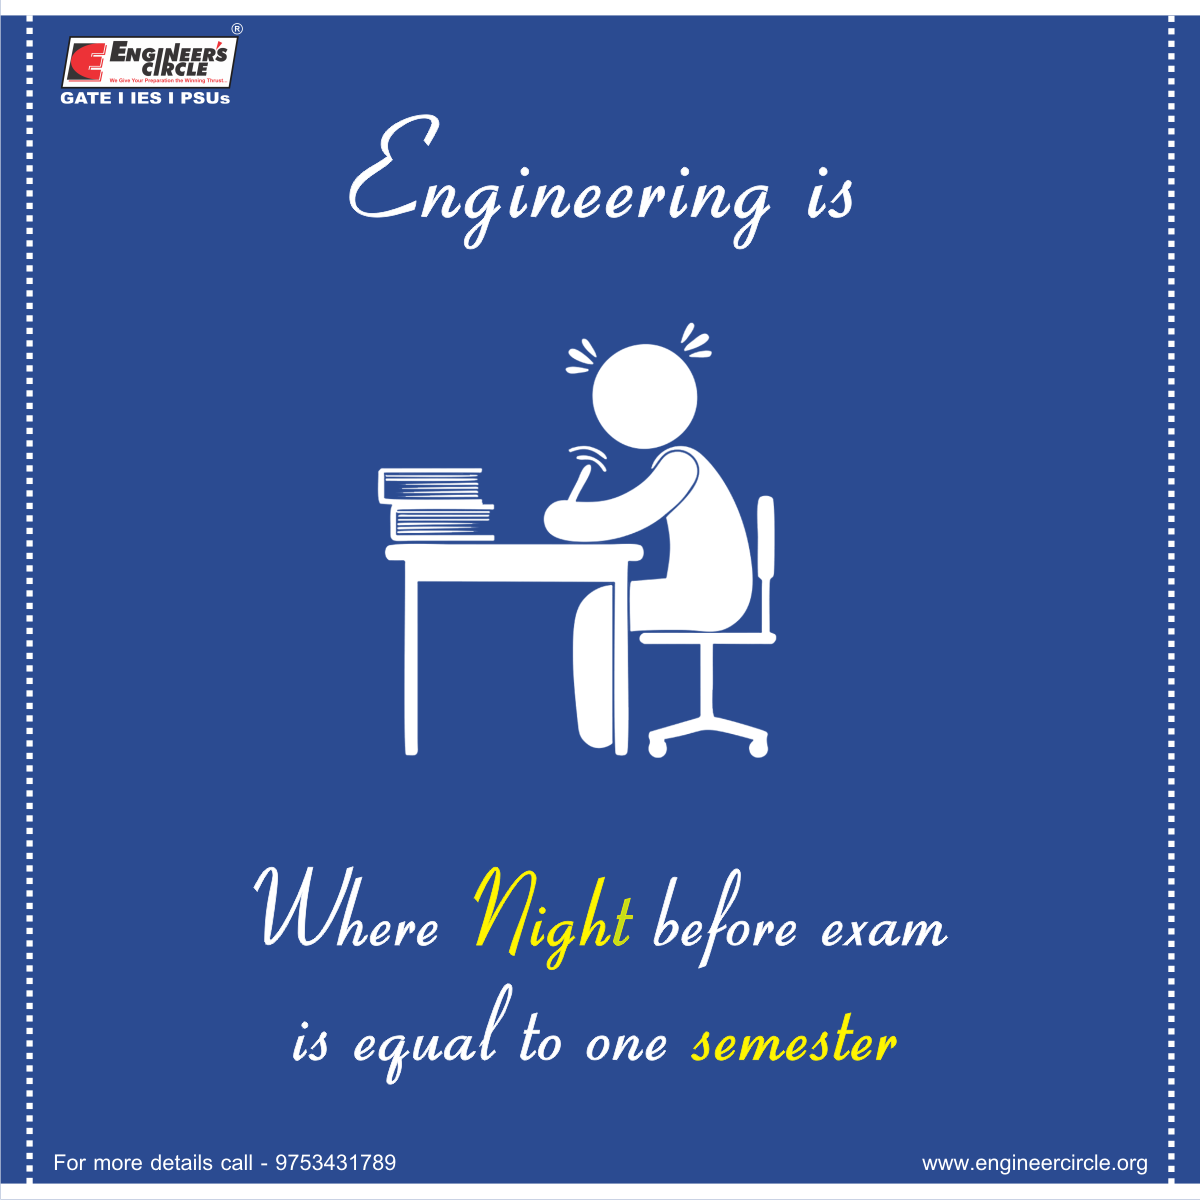 For some it is love of their life for some it is a burden is love of their life for some it is a burden whatever it is it indeed provides a lot of learning in those 4 years engineering engineers fandeluxe Image collections